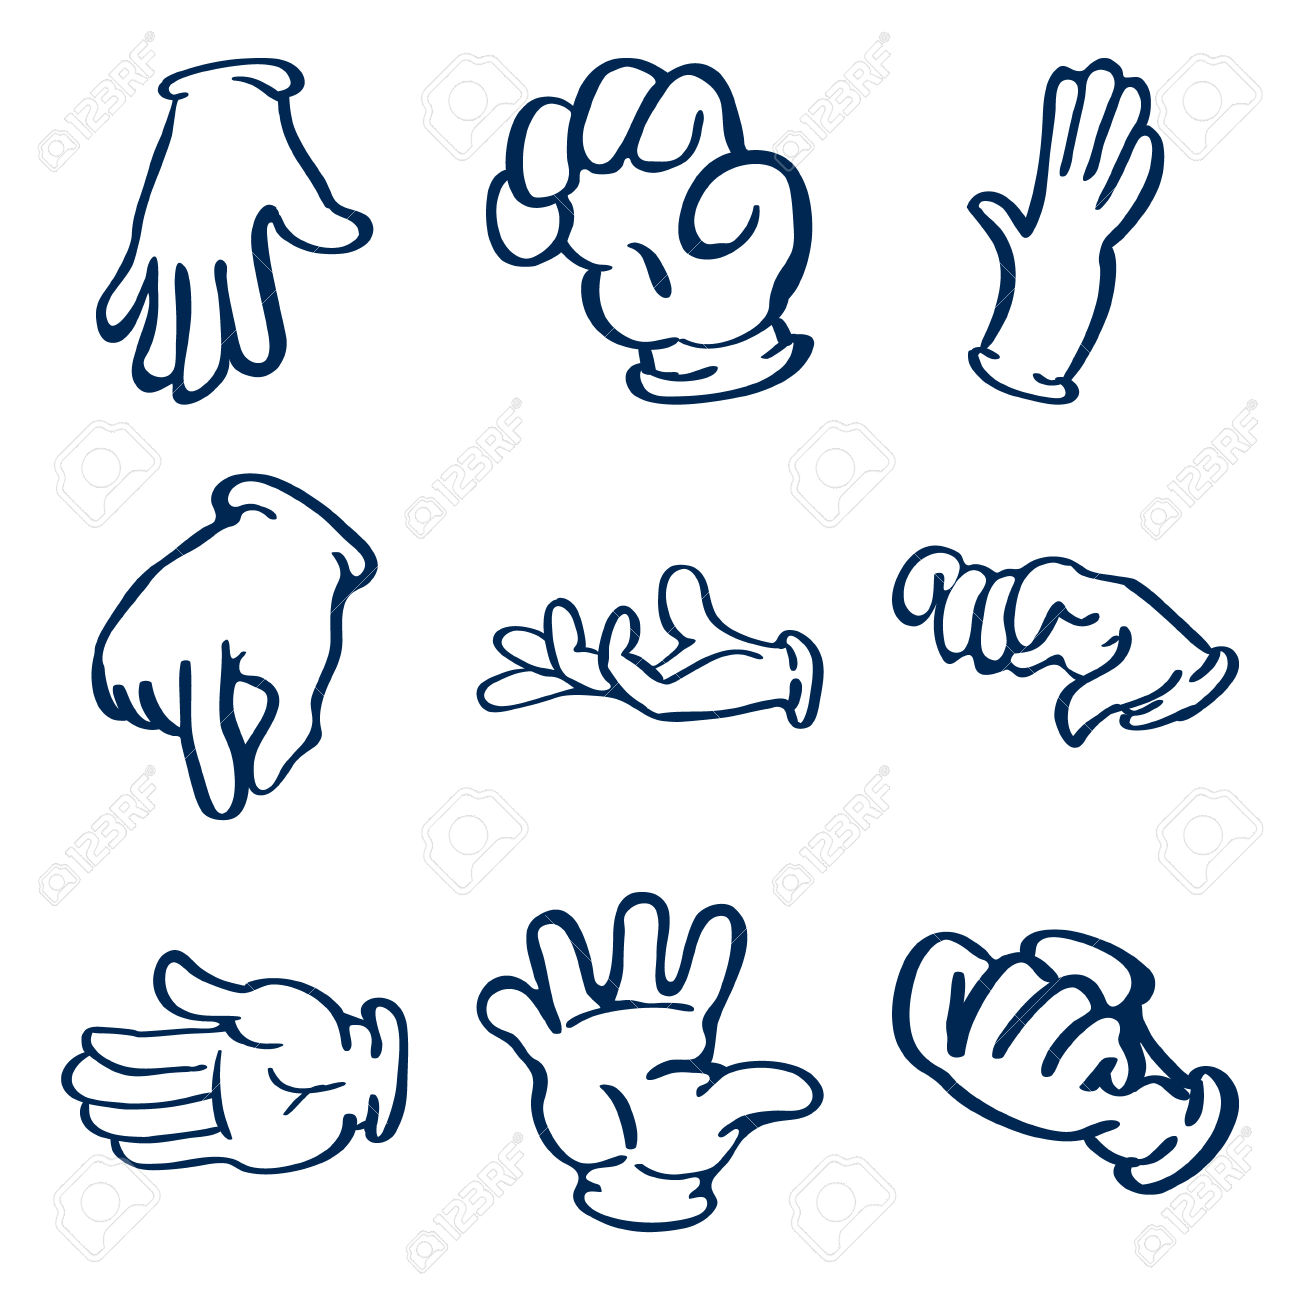 Cartoon Gloved Hands. Vector Clip Art Illustration Royalty Free.